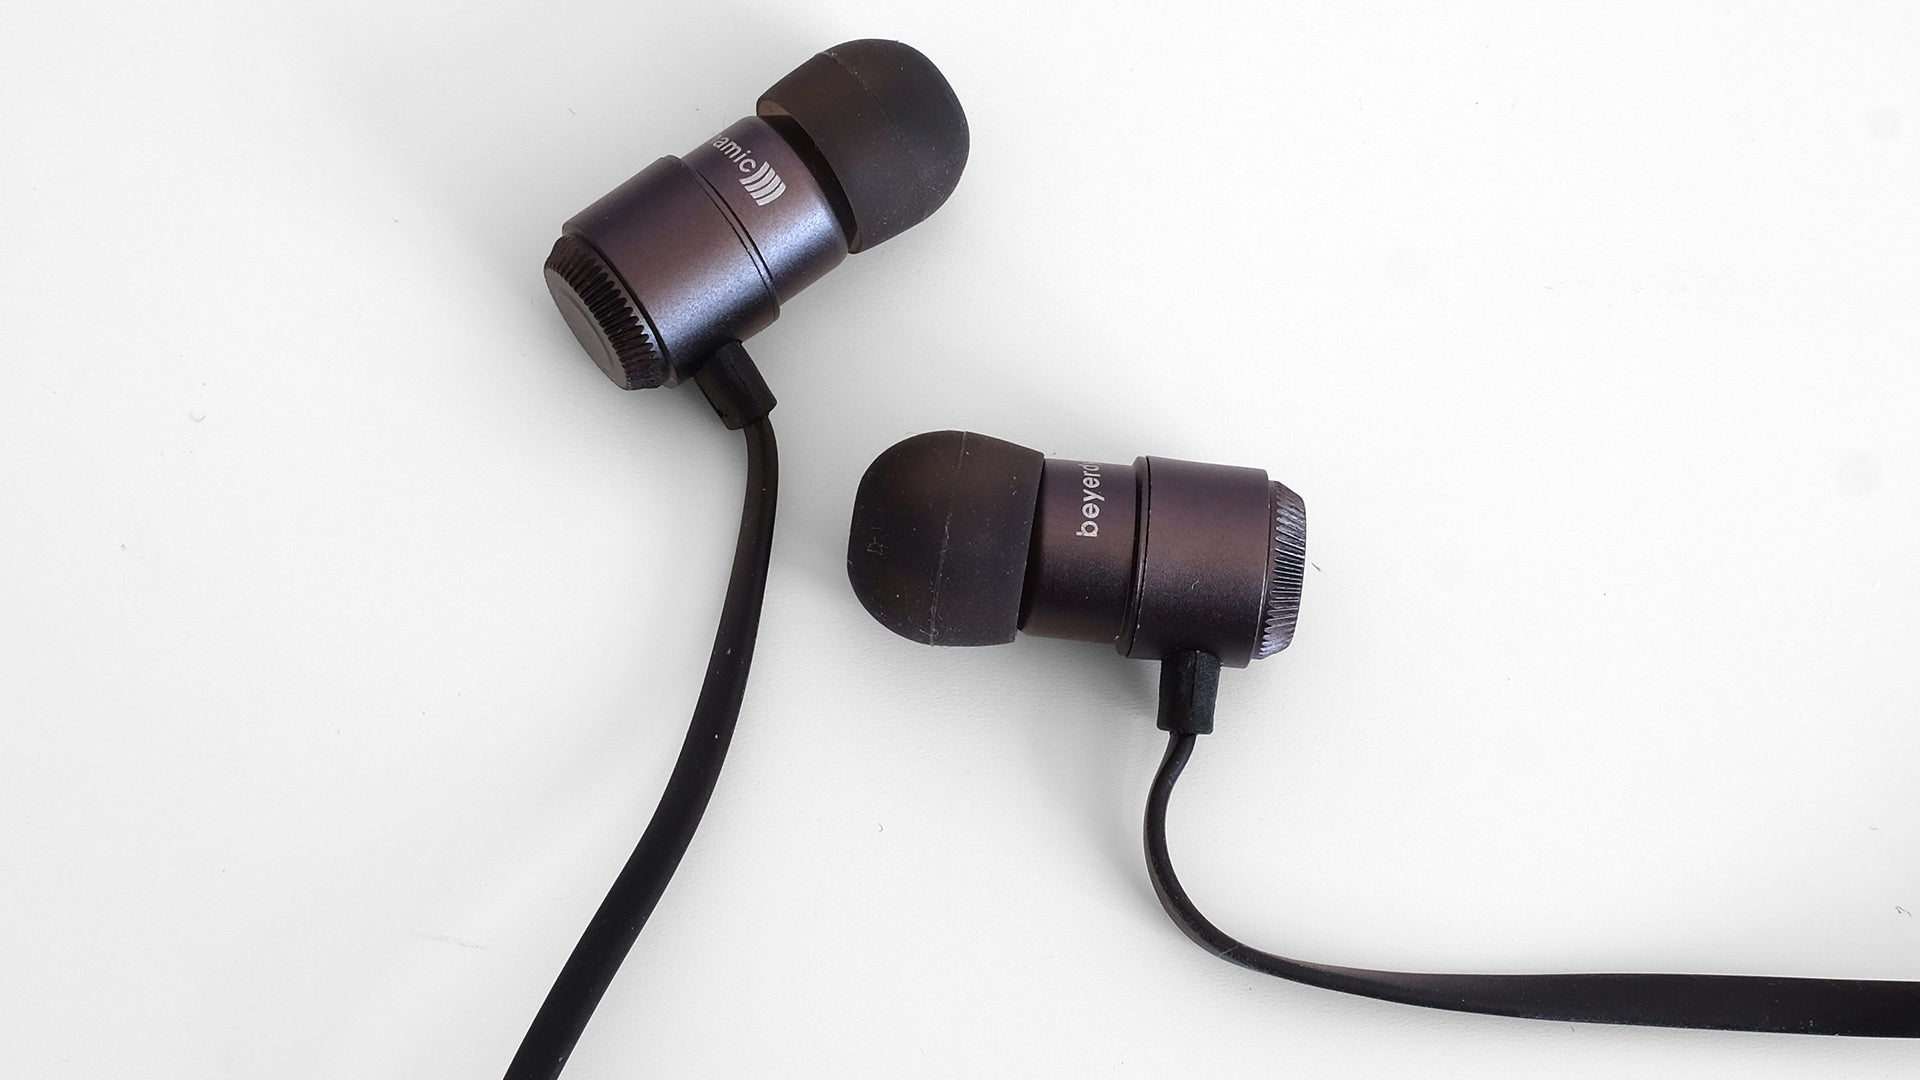 Beyerdynamic Byron Bt Review Trusted Reviews Using Bluetooth Cellular Phone And Serial Electronic Design